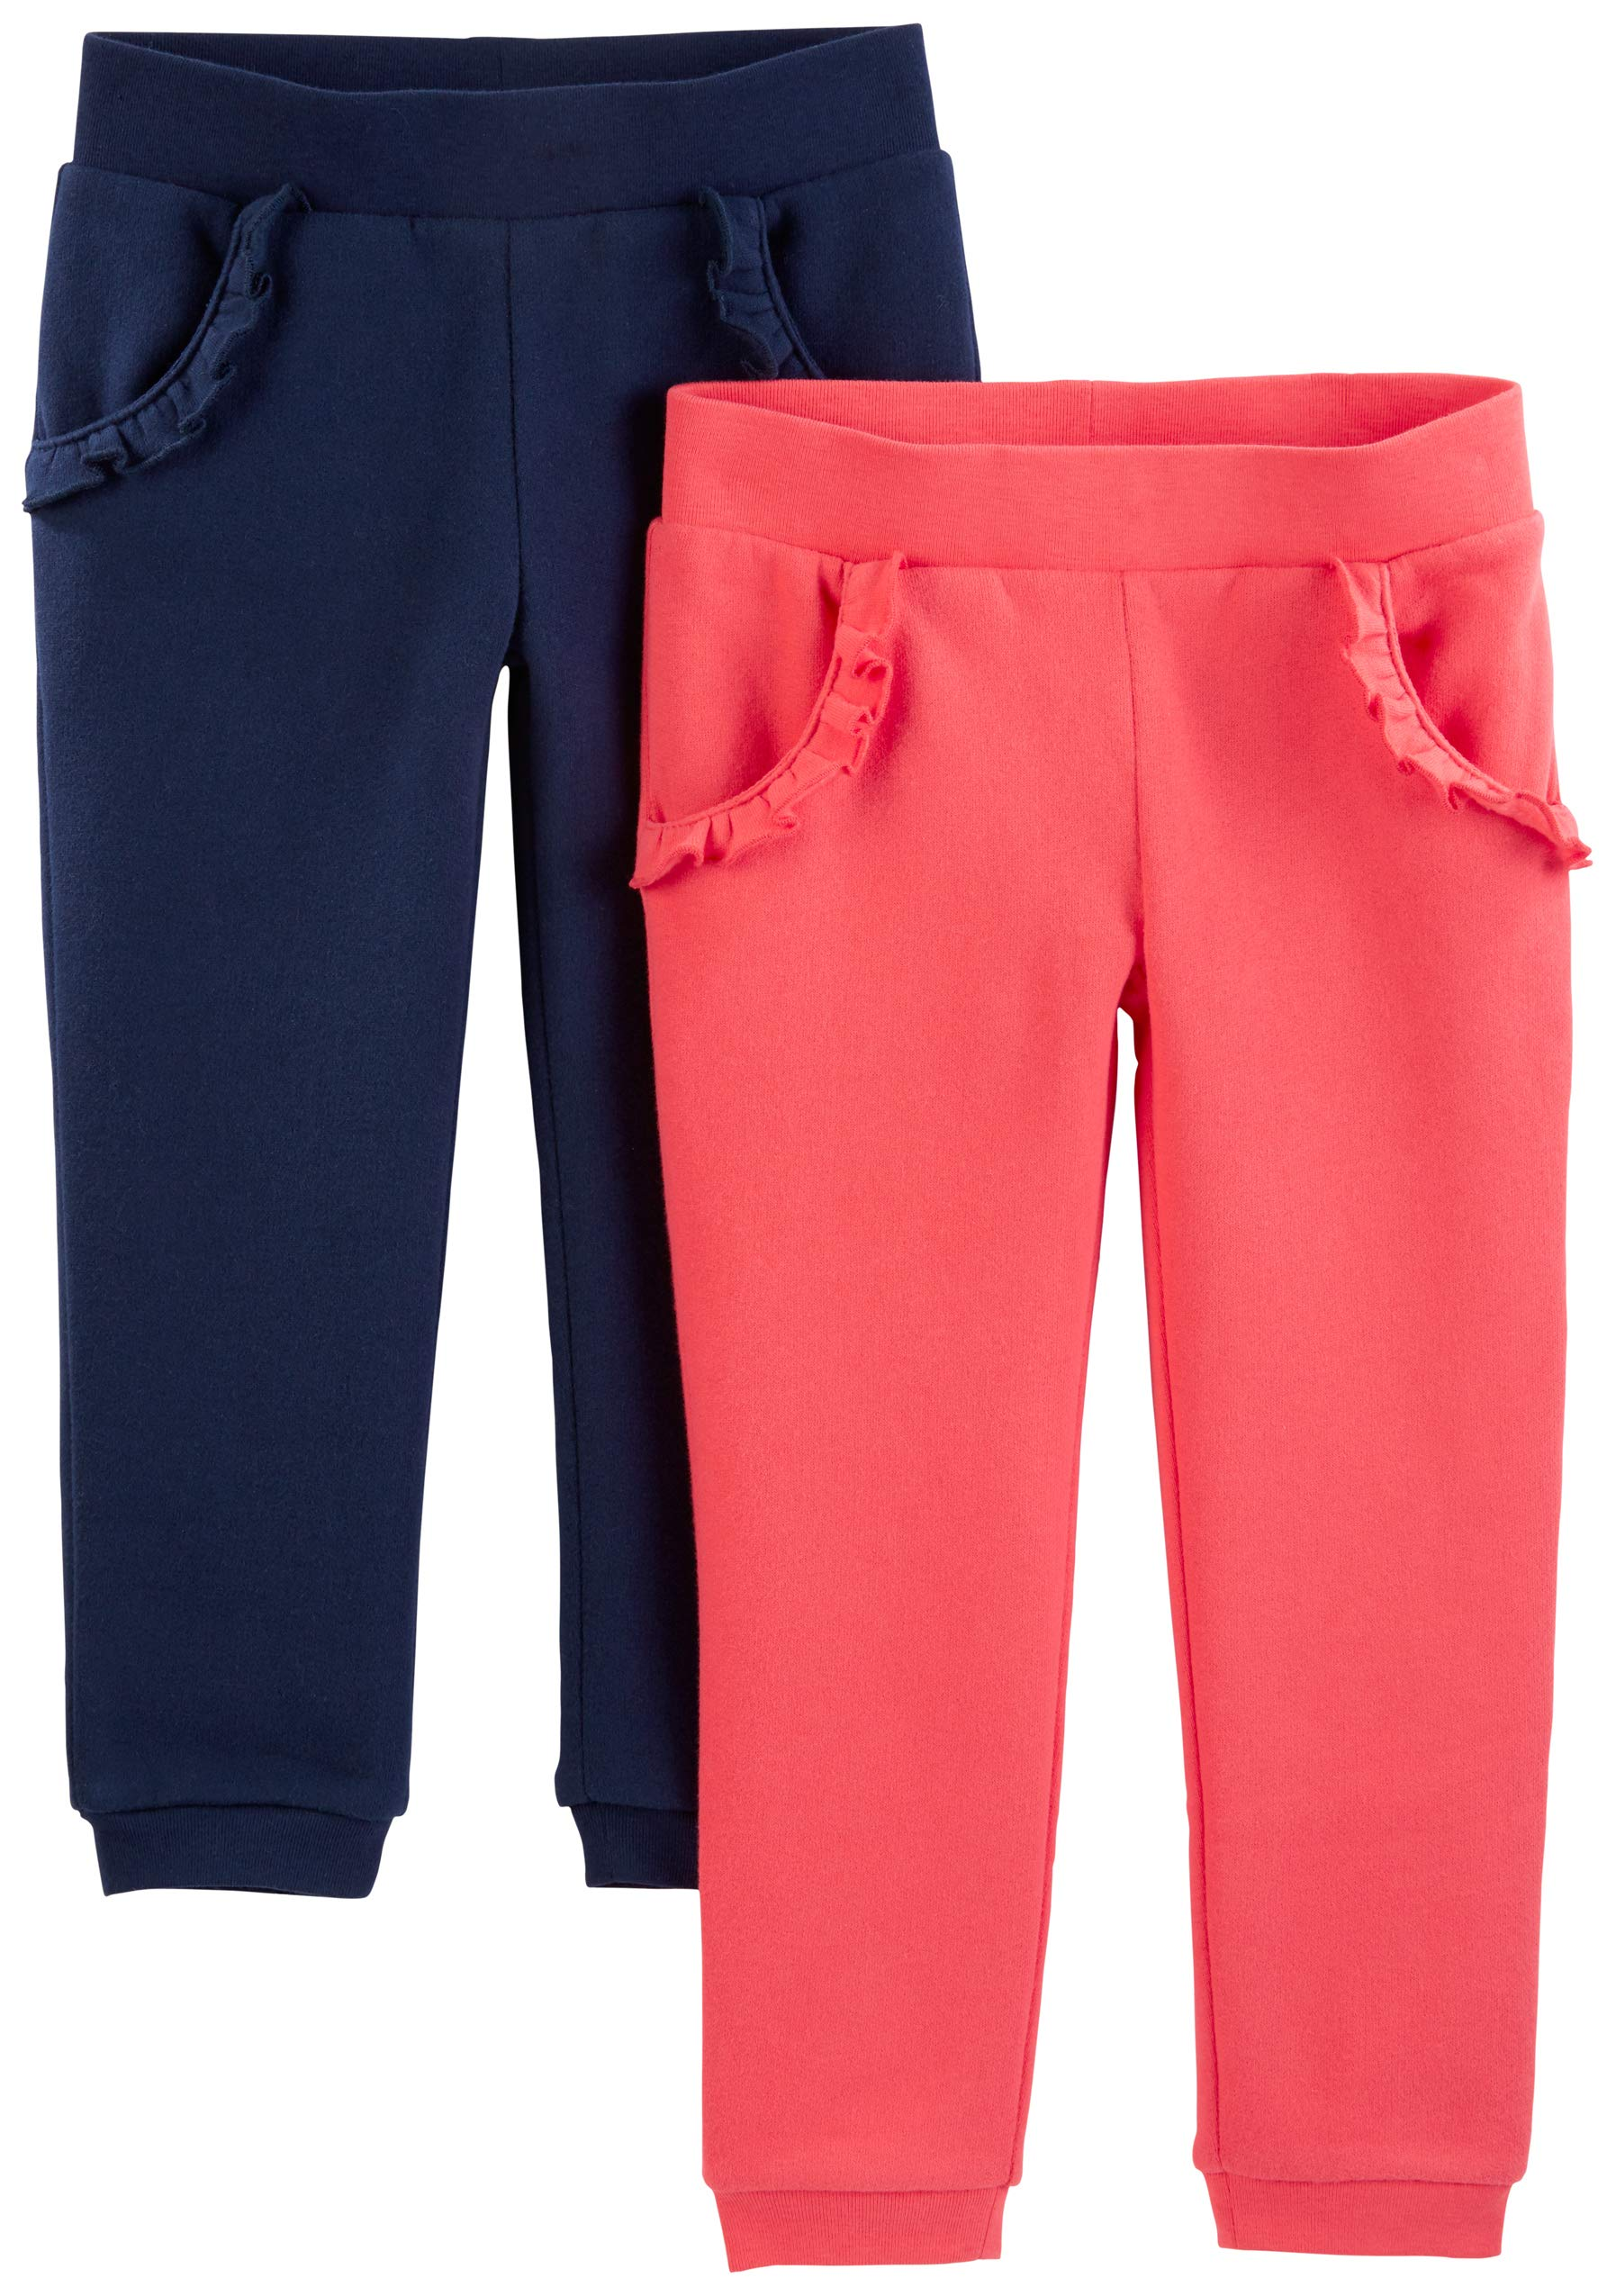 bce466346c1 Simple Joys by Carter s Toddler Girls  2-Pack Pull on Fleece Pants product  image